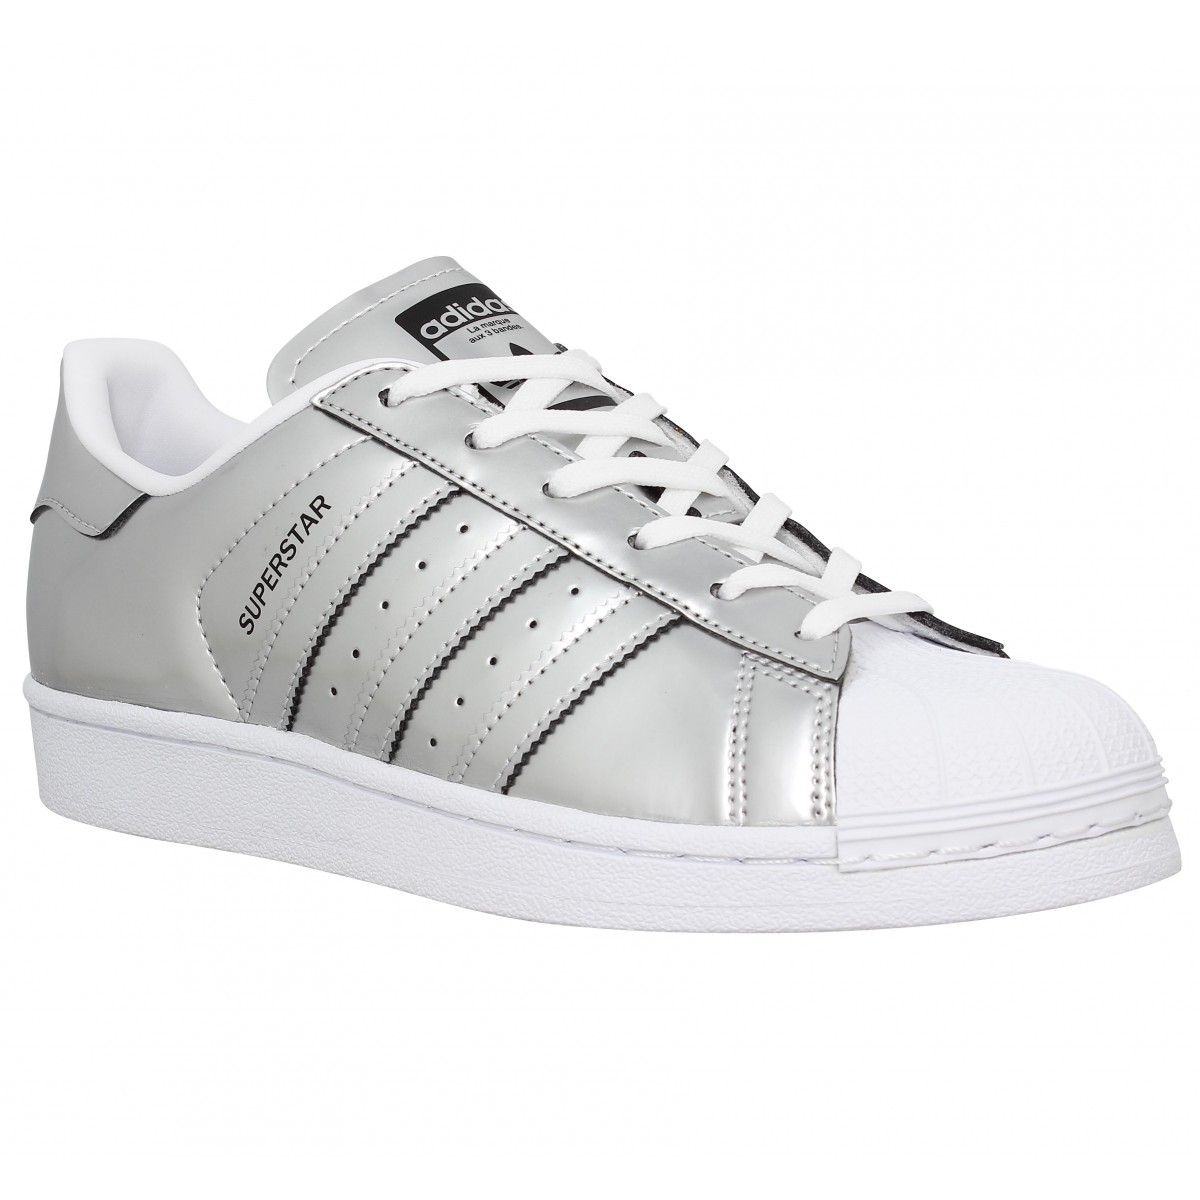 Baskets ADIDAS Superstar metal Femme Argent